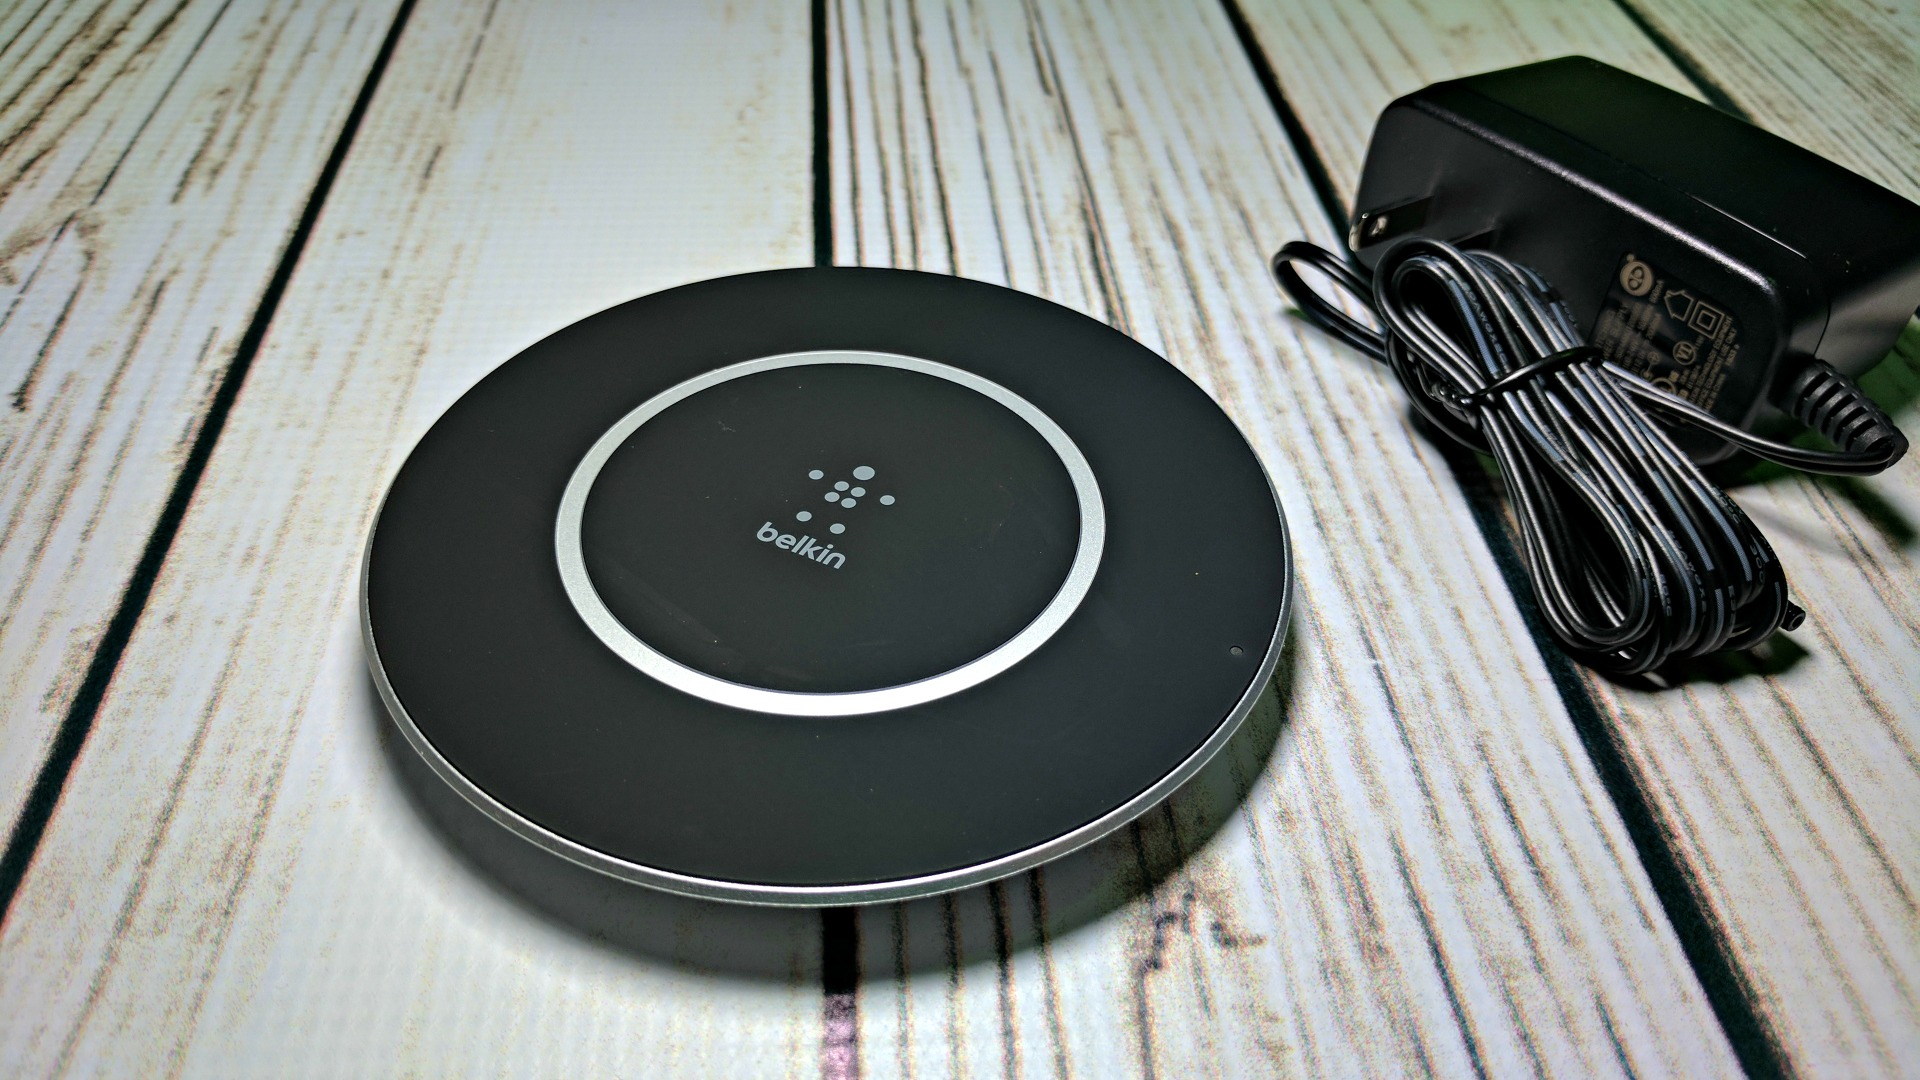 Belkin Boost Up Wireless Charging Pad Review